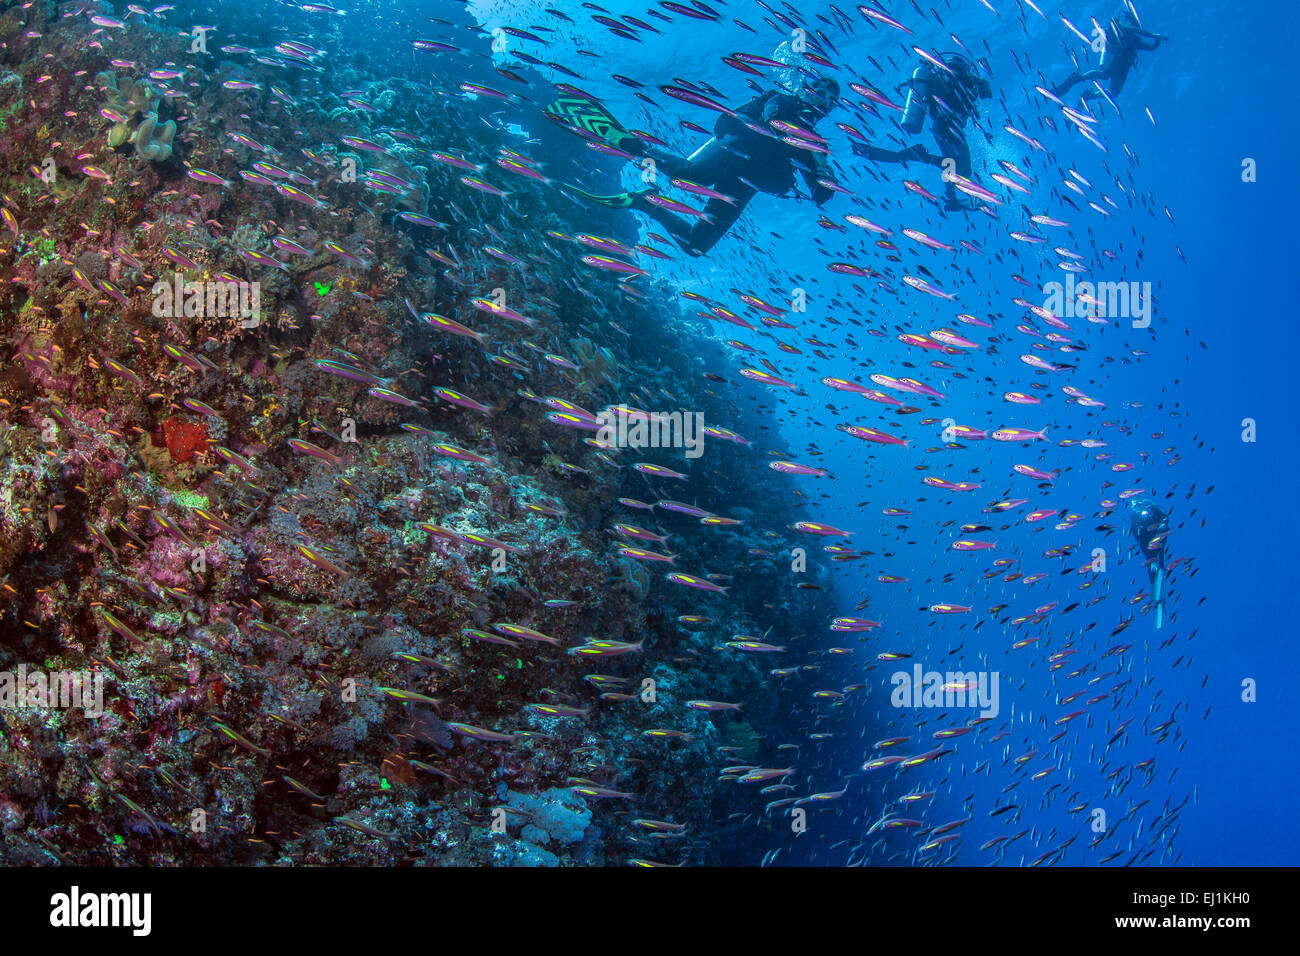 Scuba divers plunge into school of fusiliers feeding in swift ocean current. Spratly Islands, South China Sea. - Stock Image